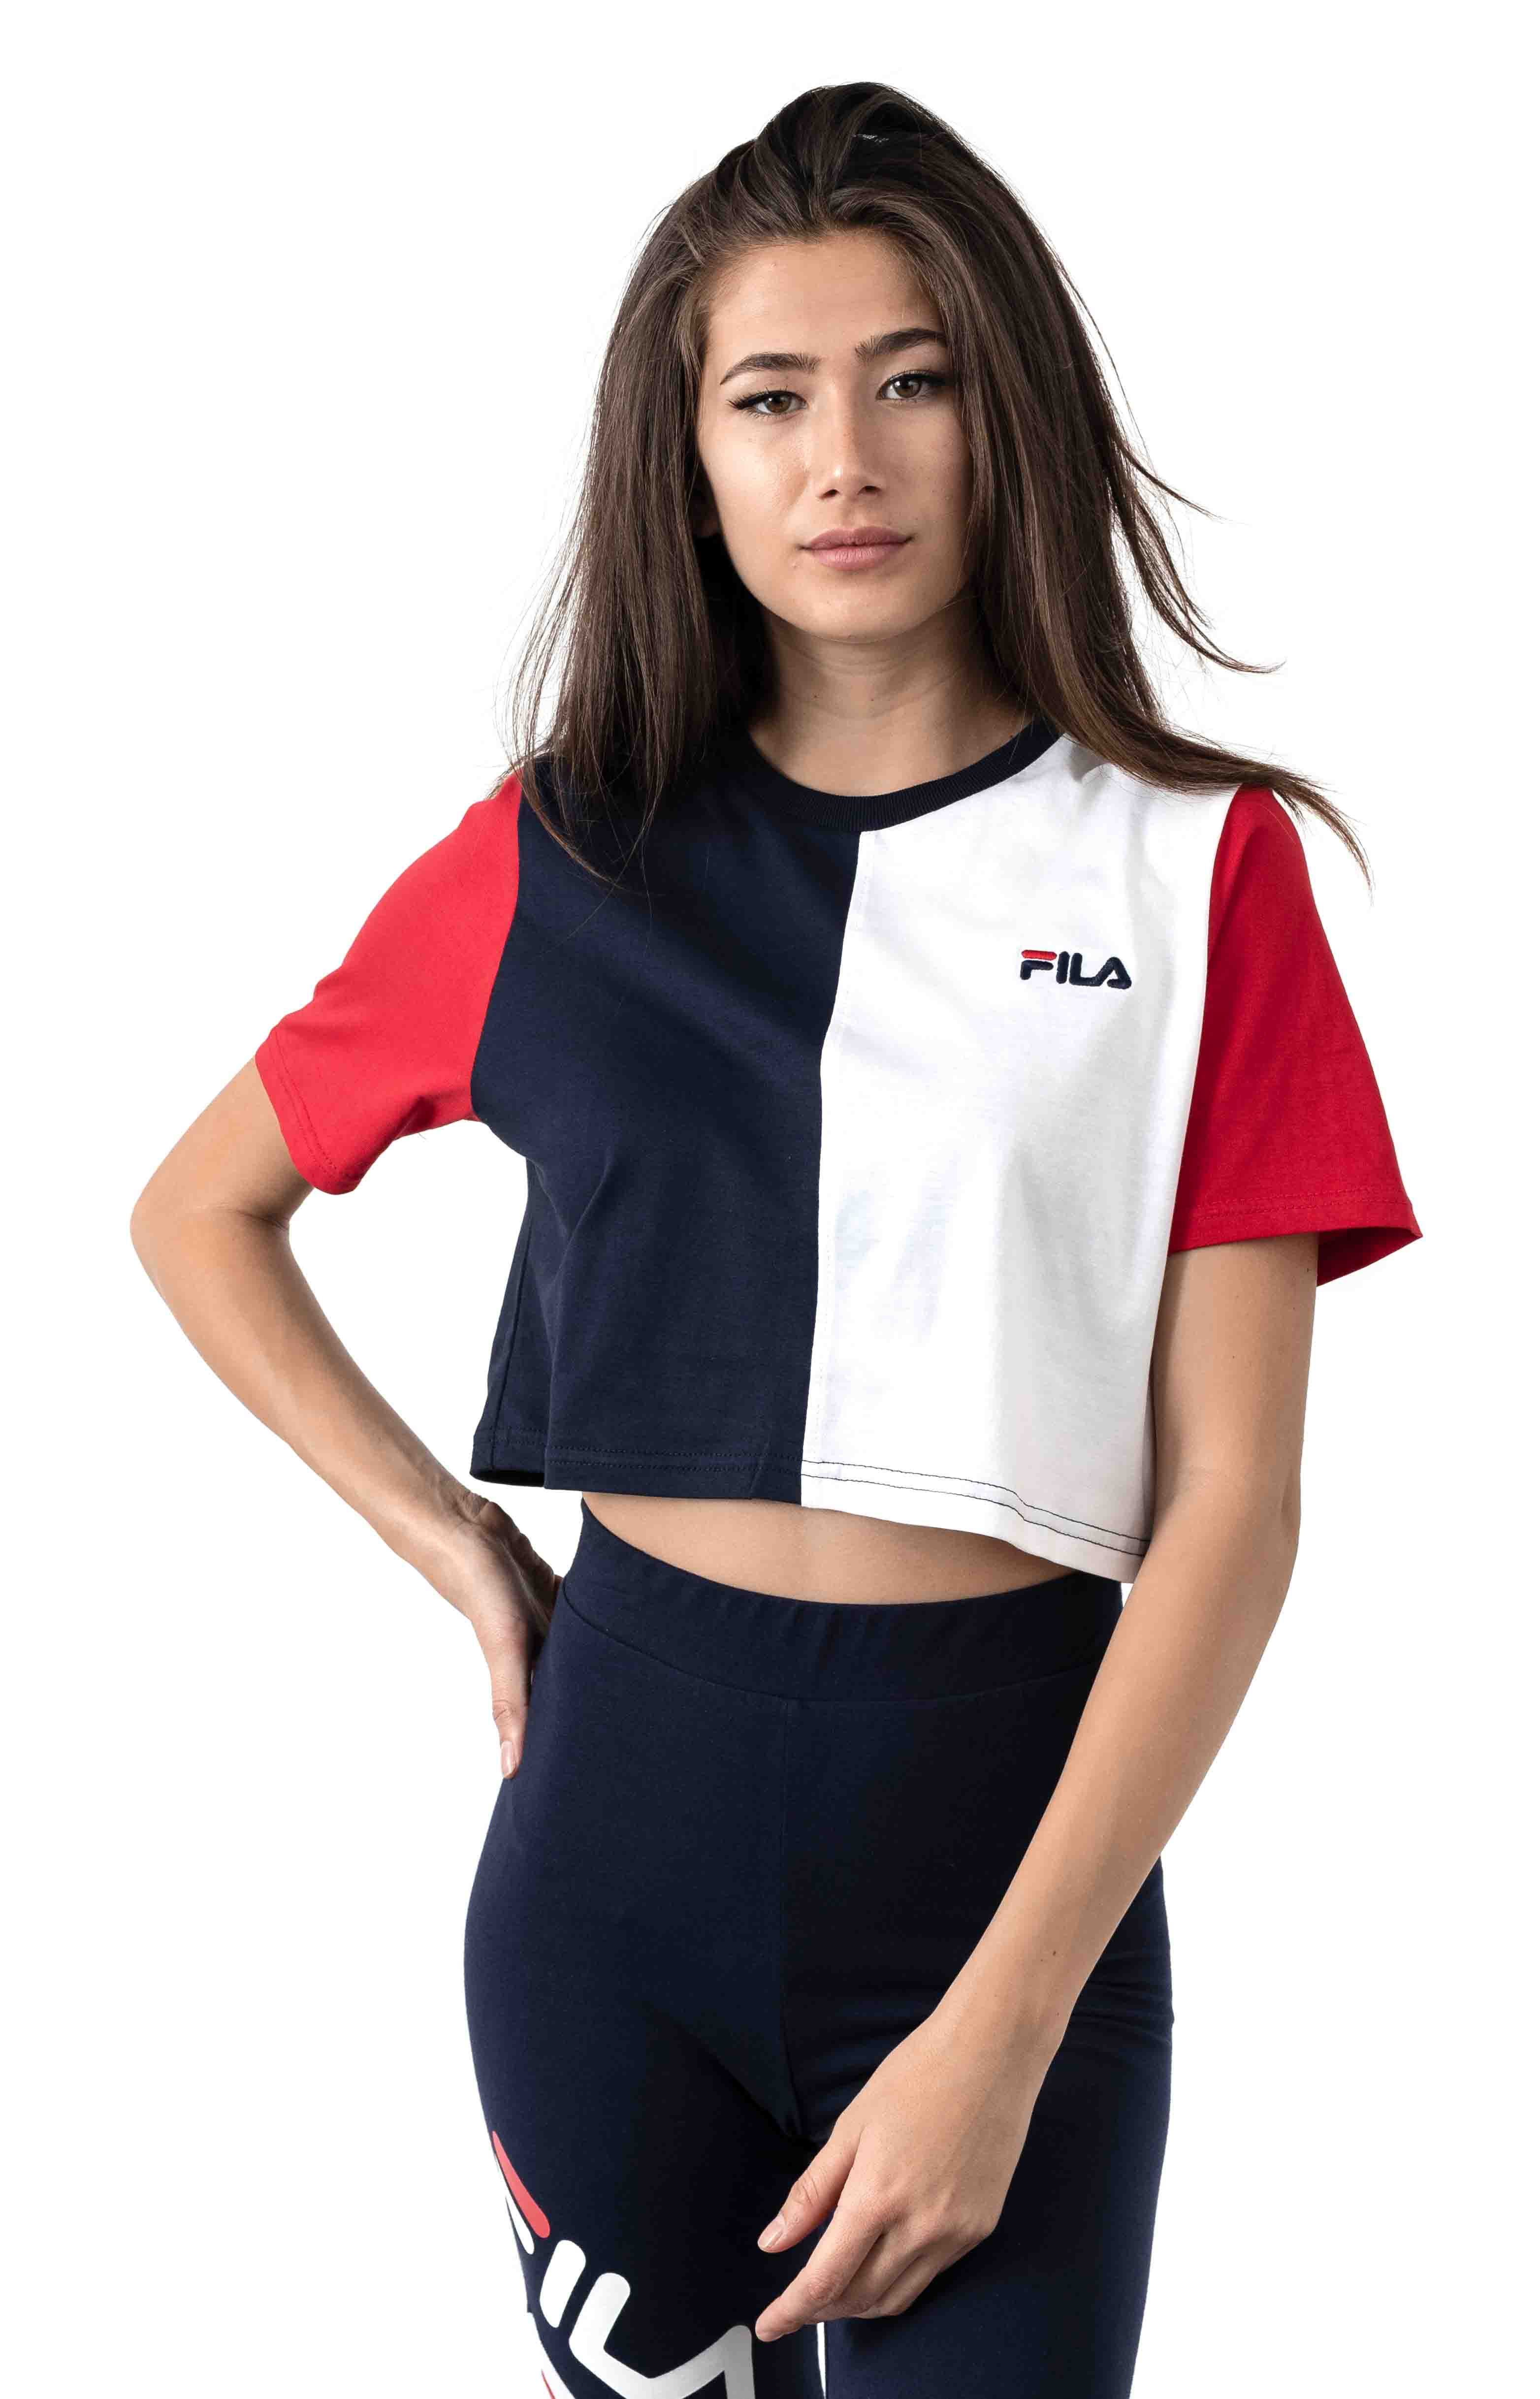 Prudence Crop Top - Peacoat/White